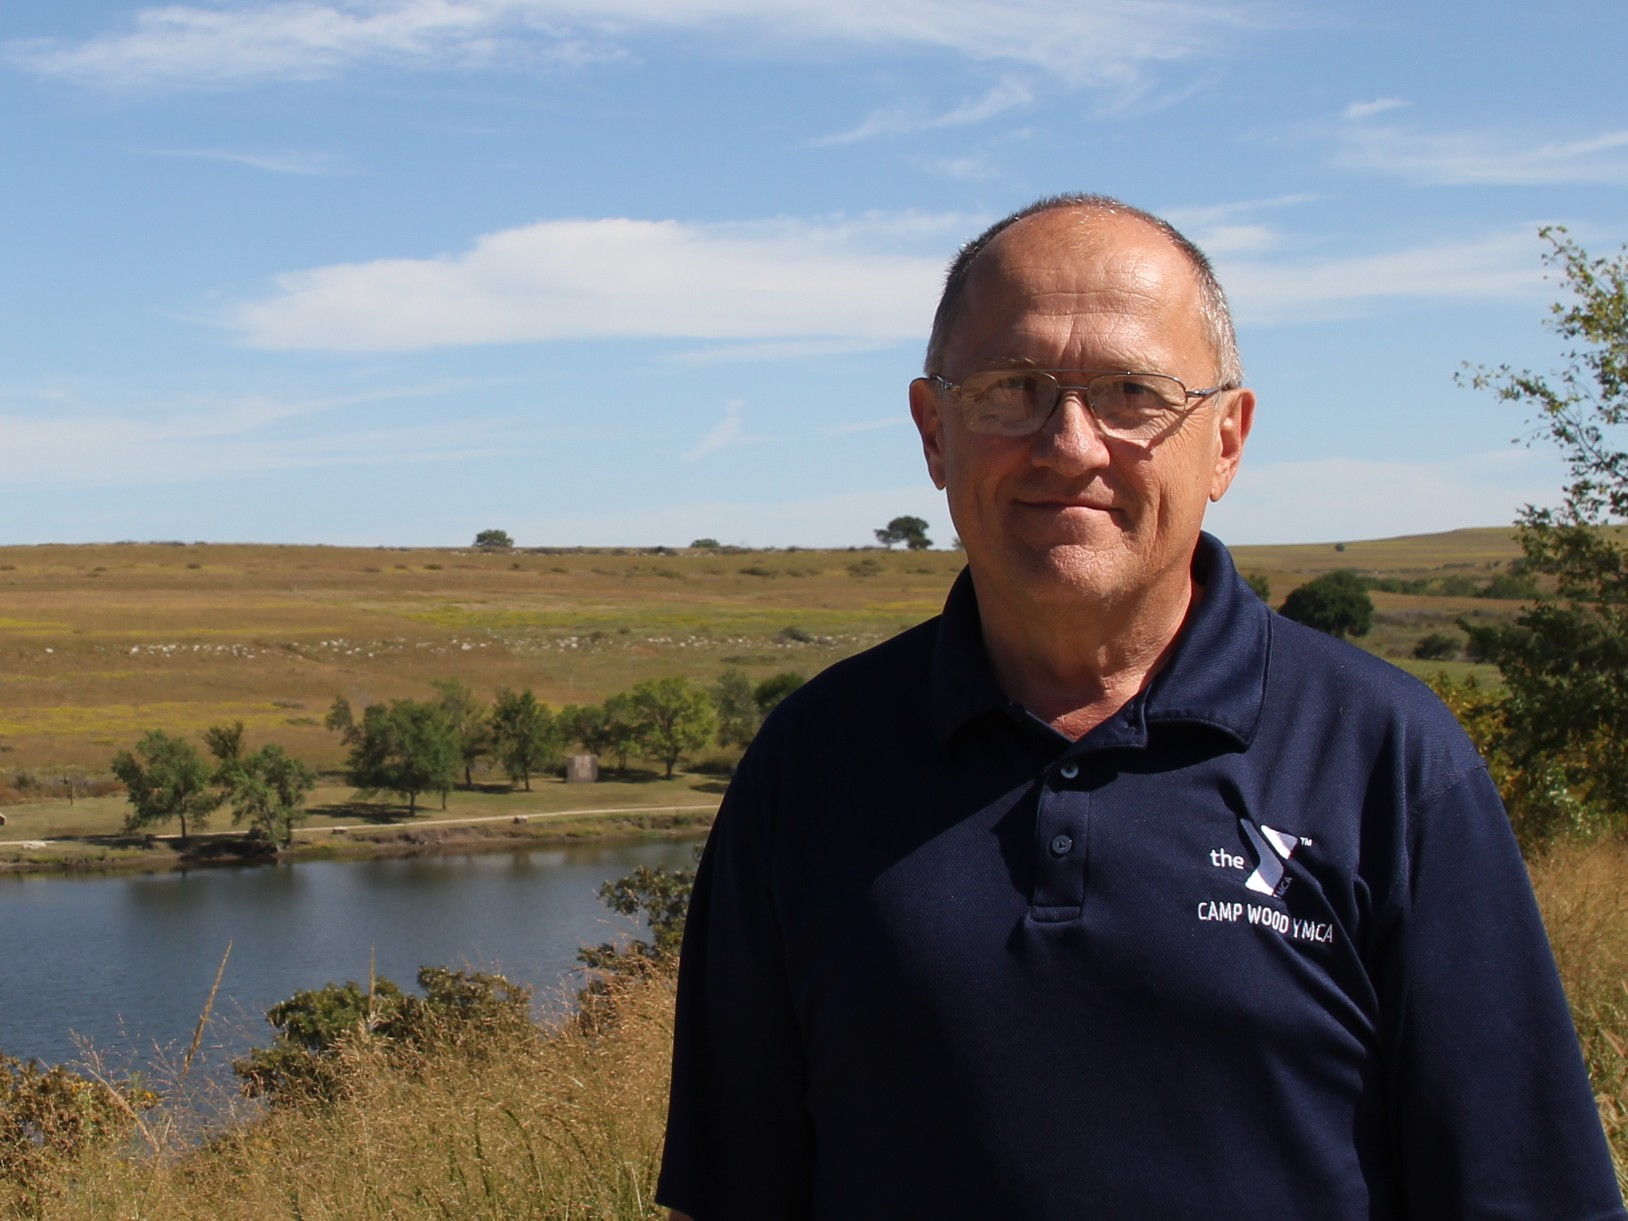 Executive Director, Ken Wold, has worked for 20 years to be a good steward of Camp Wood YMCA for current and future generations.